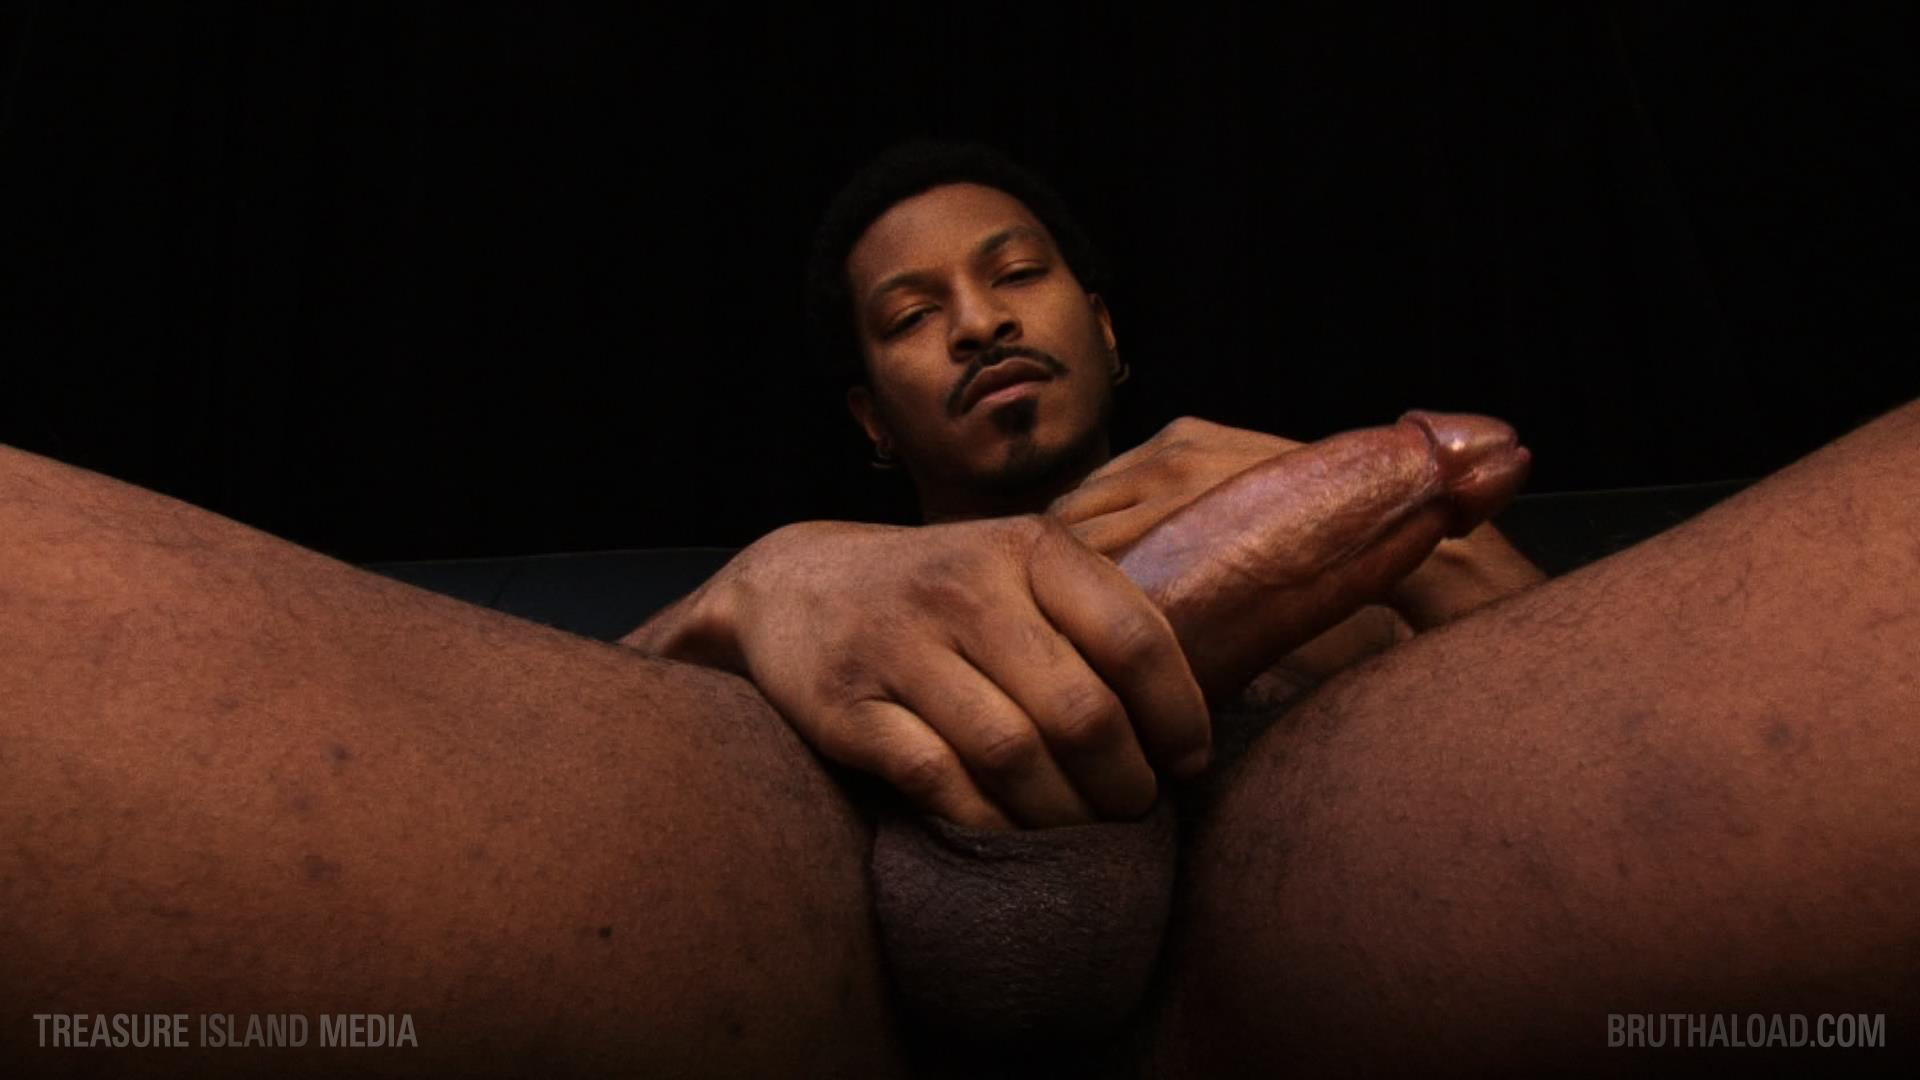 Treasure-Island-Media-Bruthaload-Devin-Masters-Big-Black-Uncut-Cock-13 Treasure Island Media's Bruthaload: Devin Masters Edging His Big Black Uncut Cock